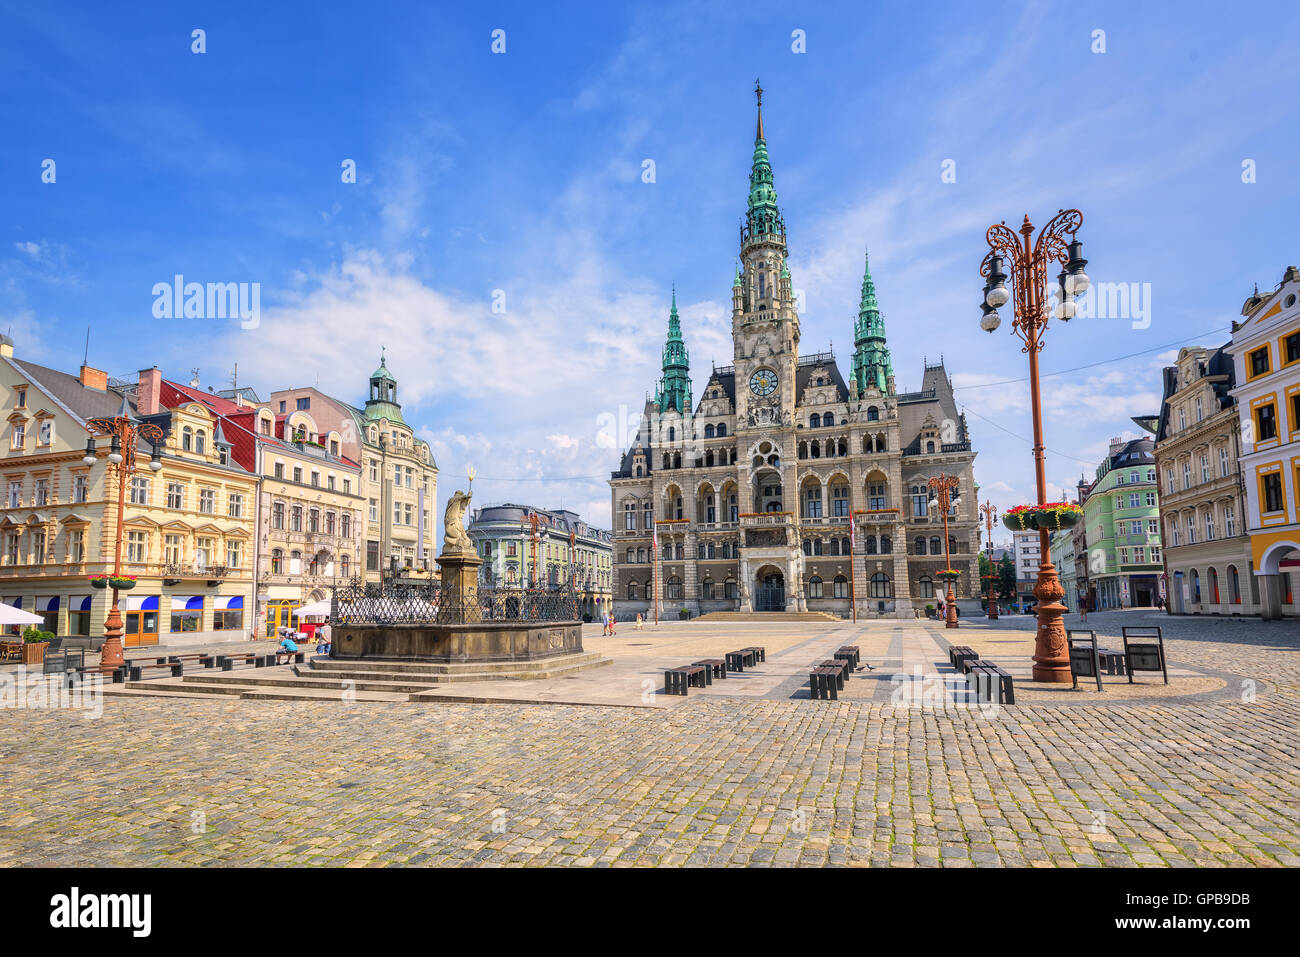 The town hall and the central square in Liberec, Czech Republic Stock Photo